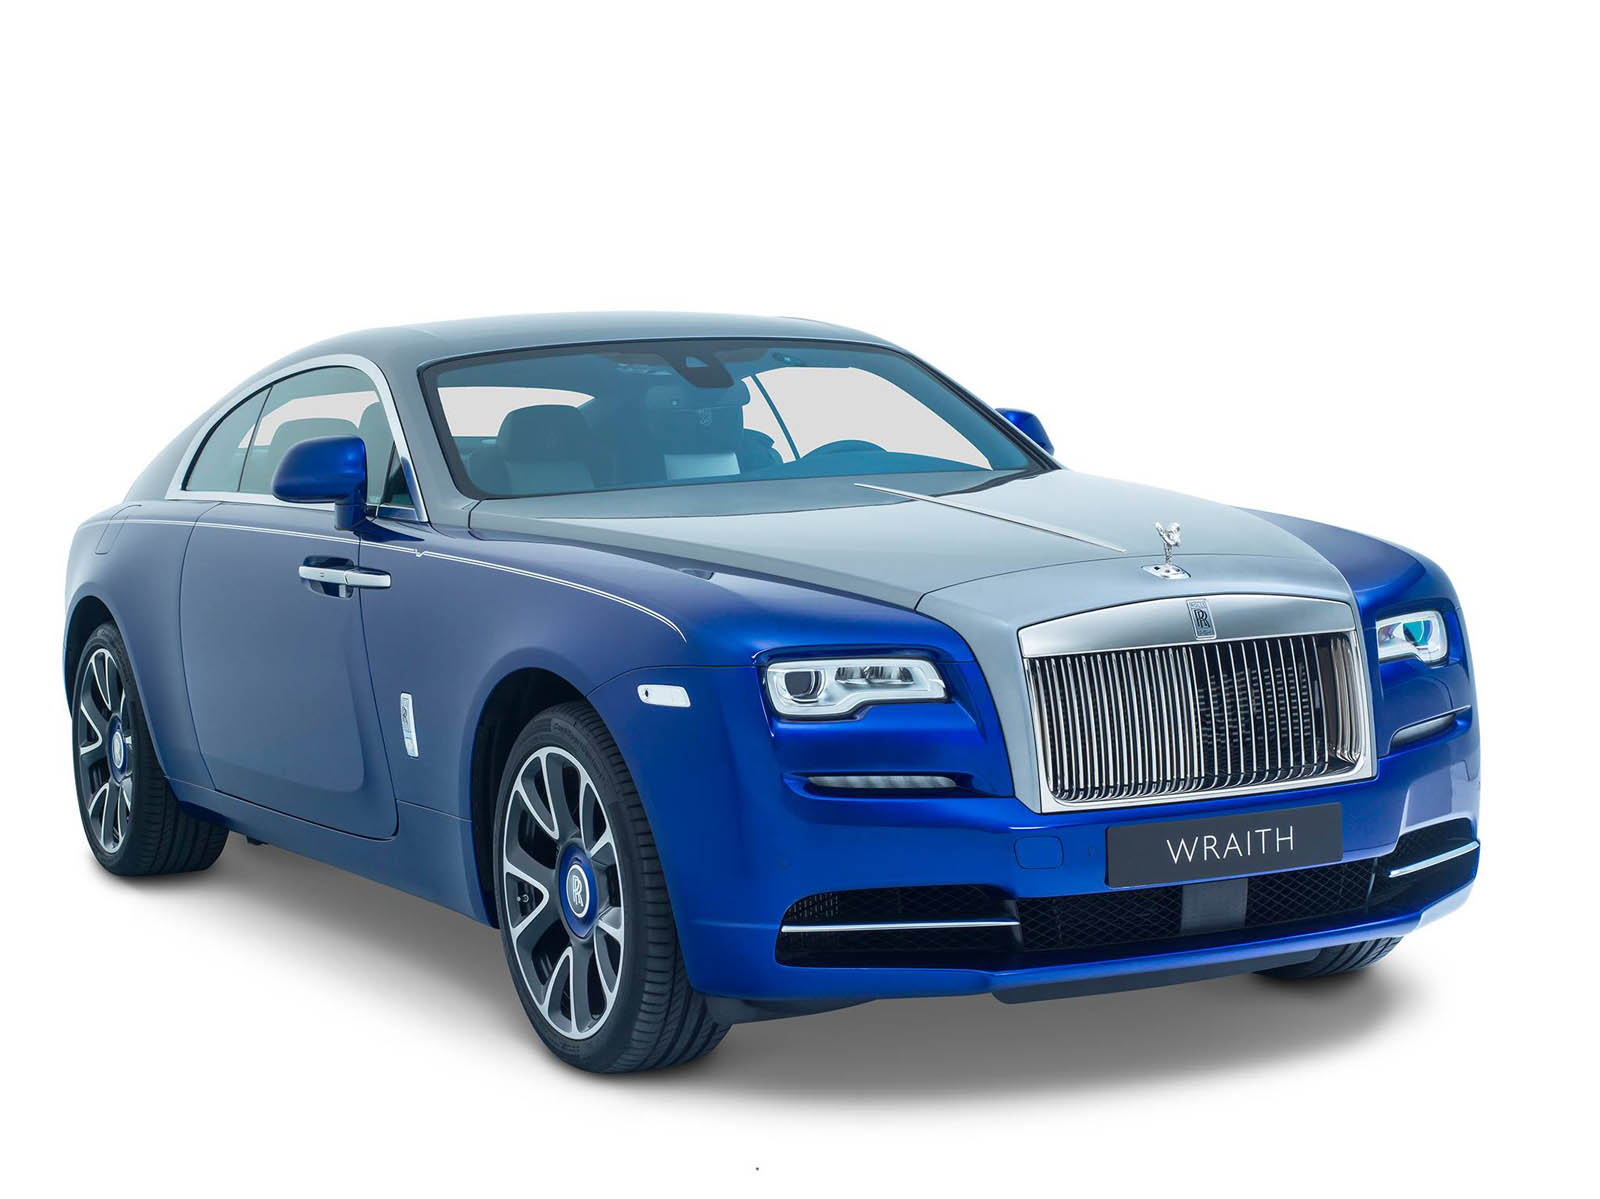 rolls-royce-Wraith-inspired-by-Sheikh-Zayed-Bridge-07